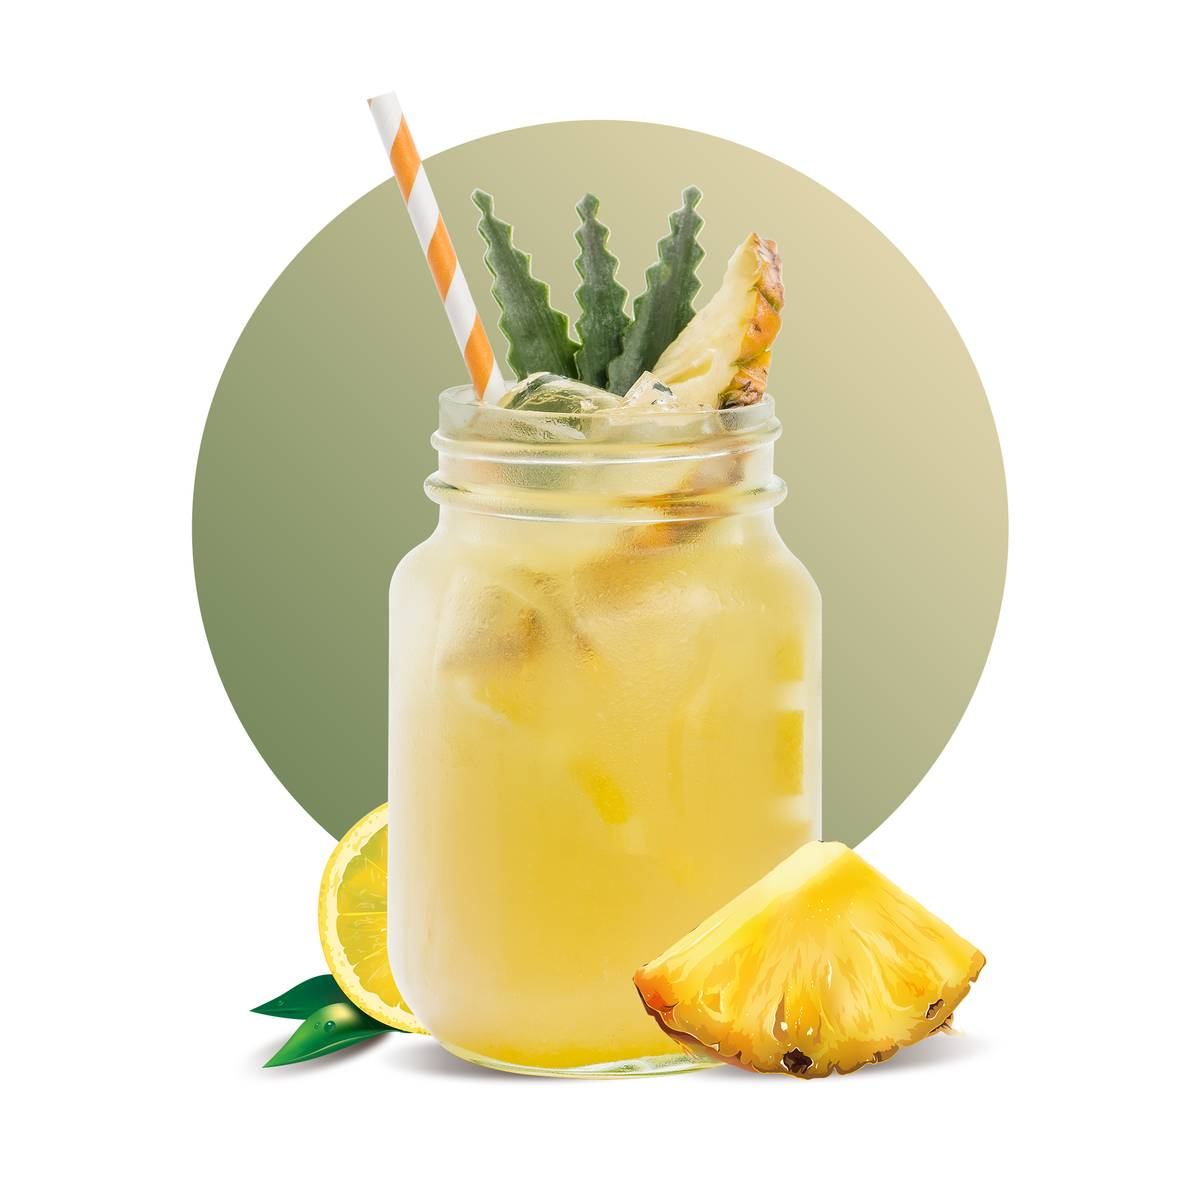 Pineapple Lemonade Drink Recipe